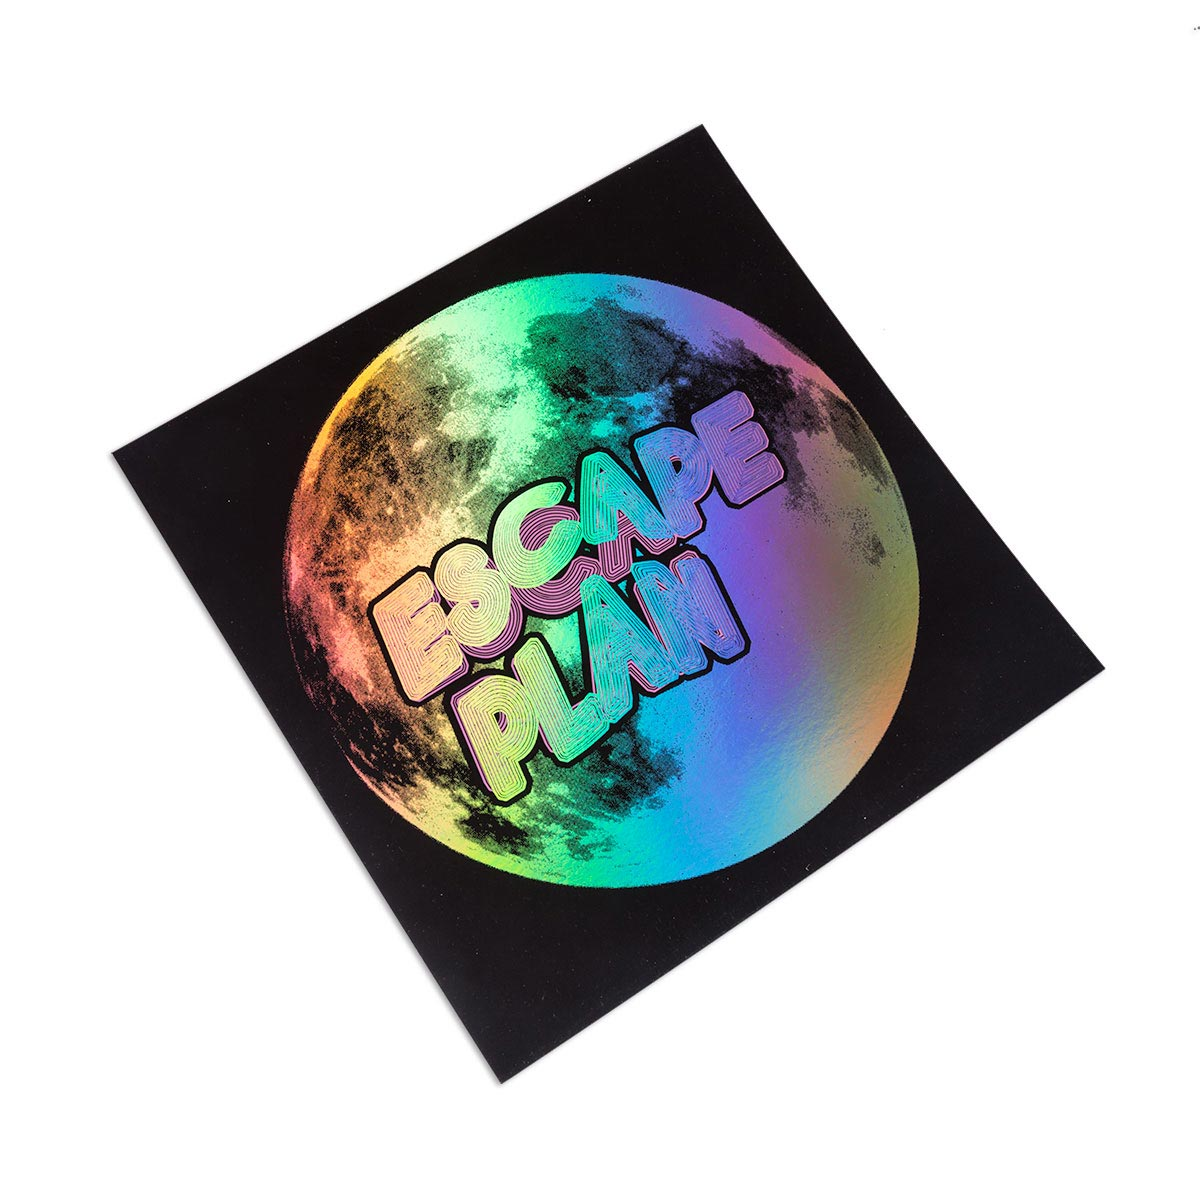 Medium Square Foiled Heavyweight Art Prints